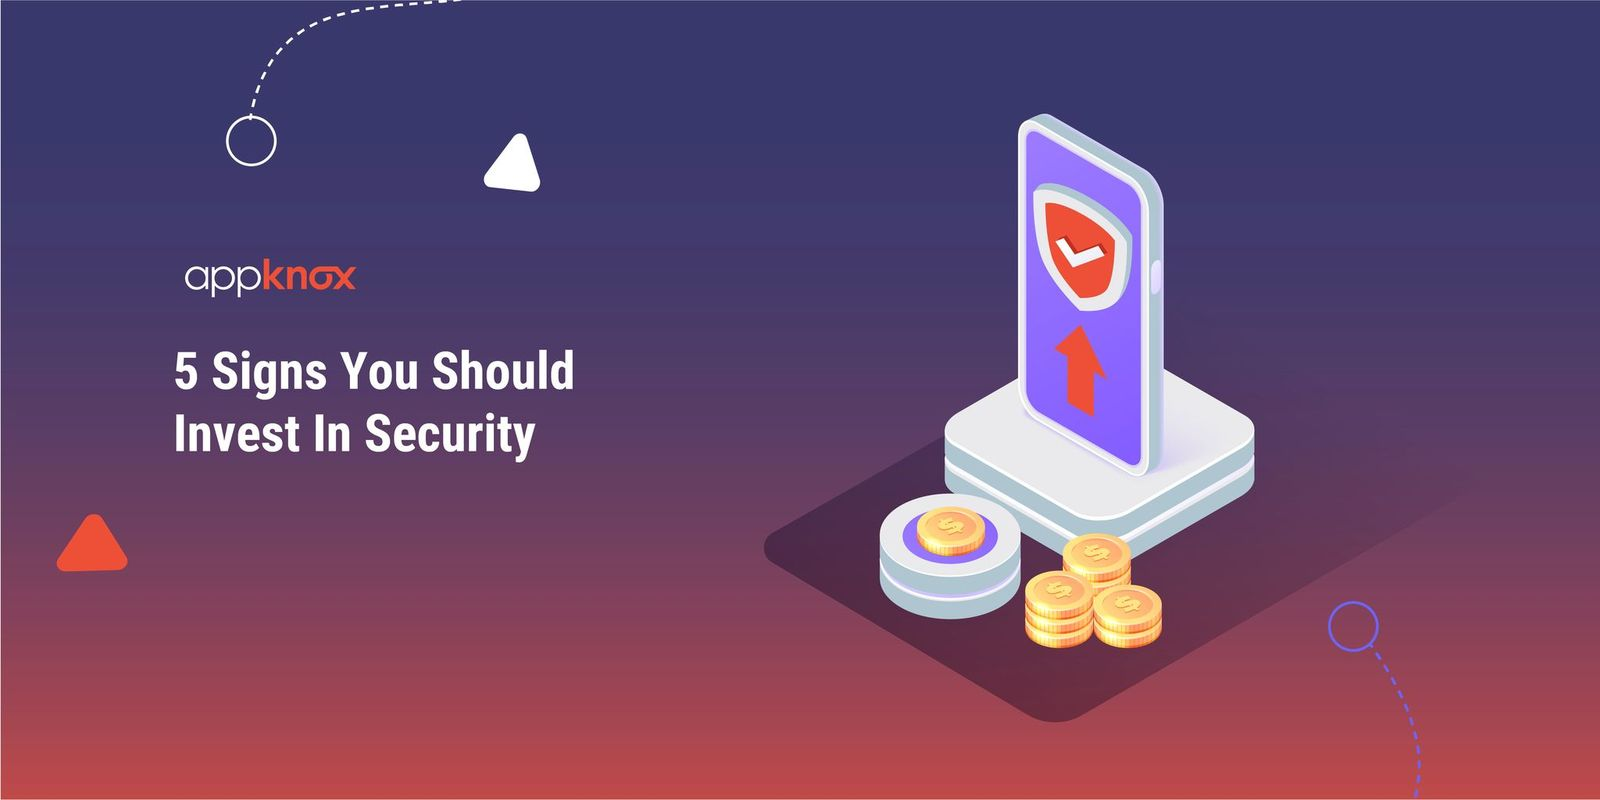 5 Signs You Should Invest In Security